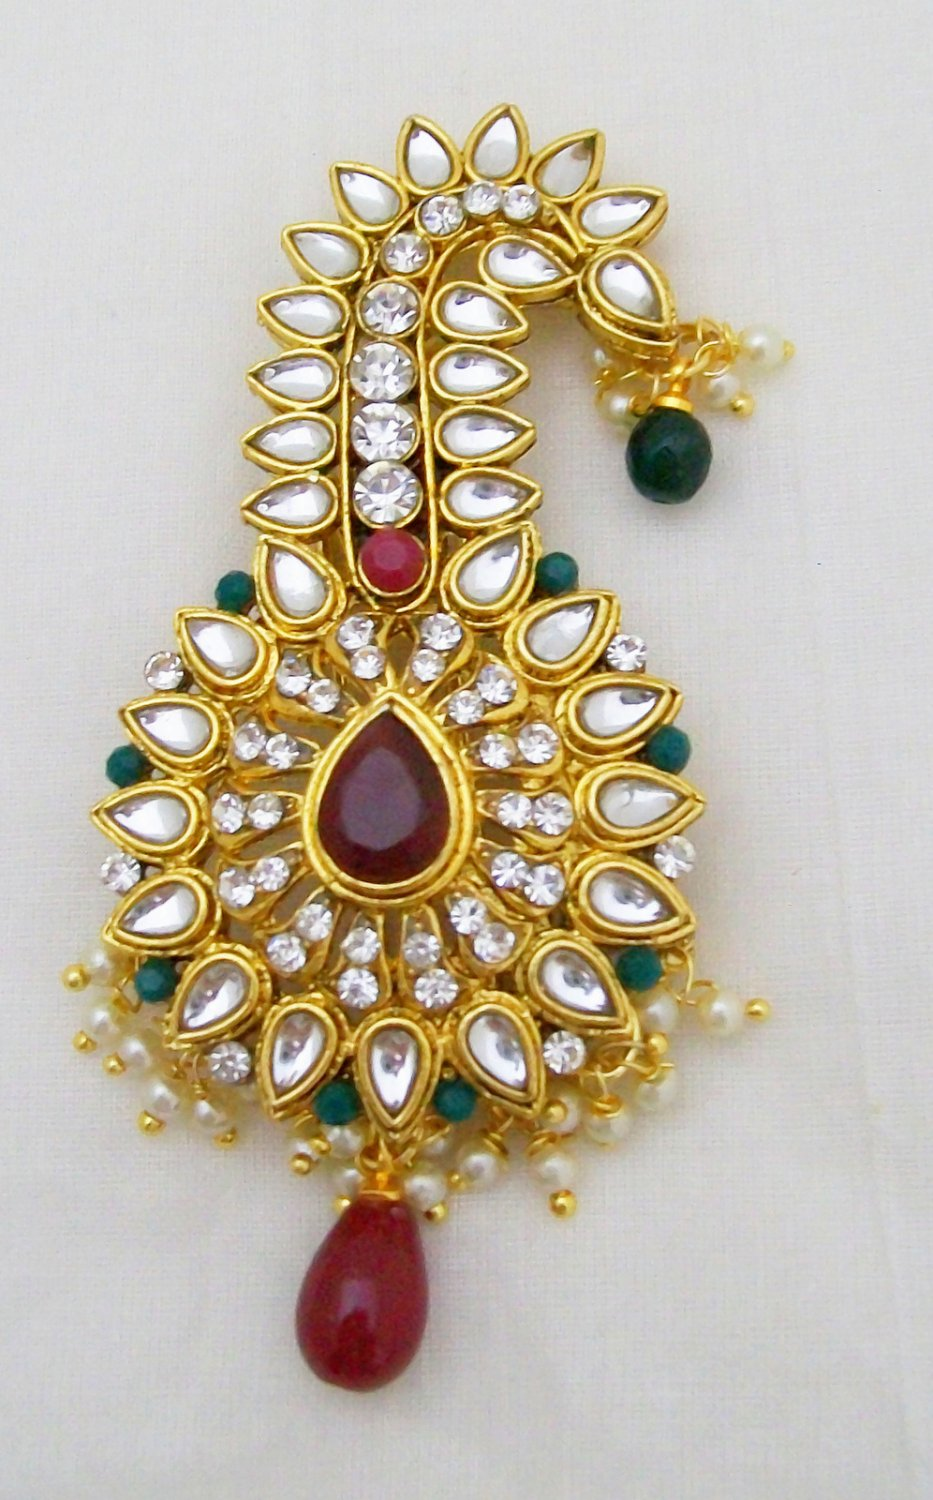 homage birthday elizabeth on britain moving unique which in pays s with marks of story brooch the one joya celebrates djoya a week d show happy jewel kind queen monarch to this queens